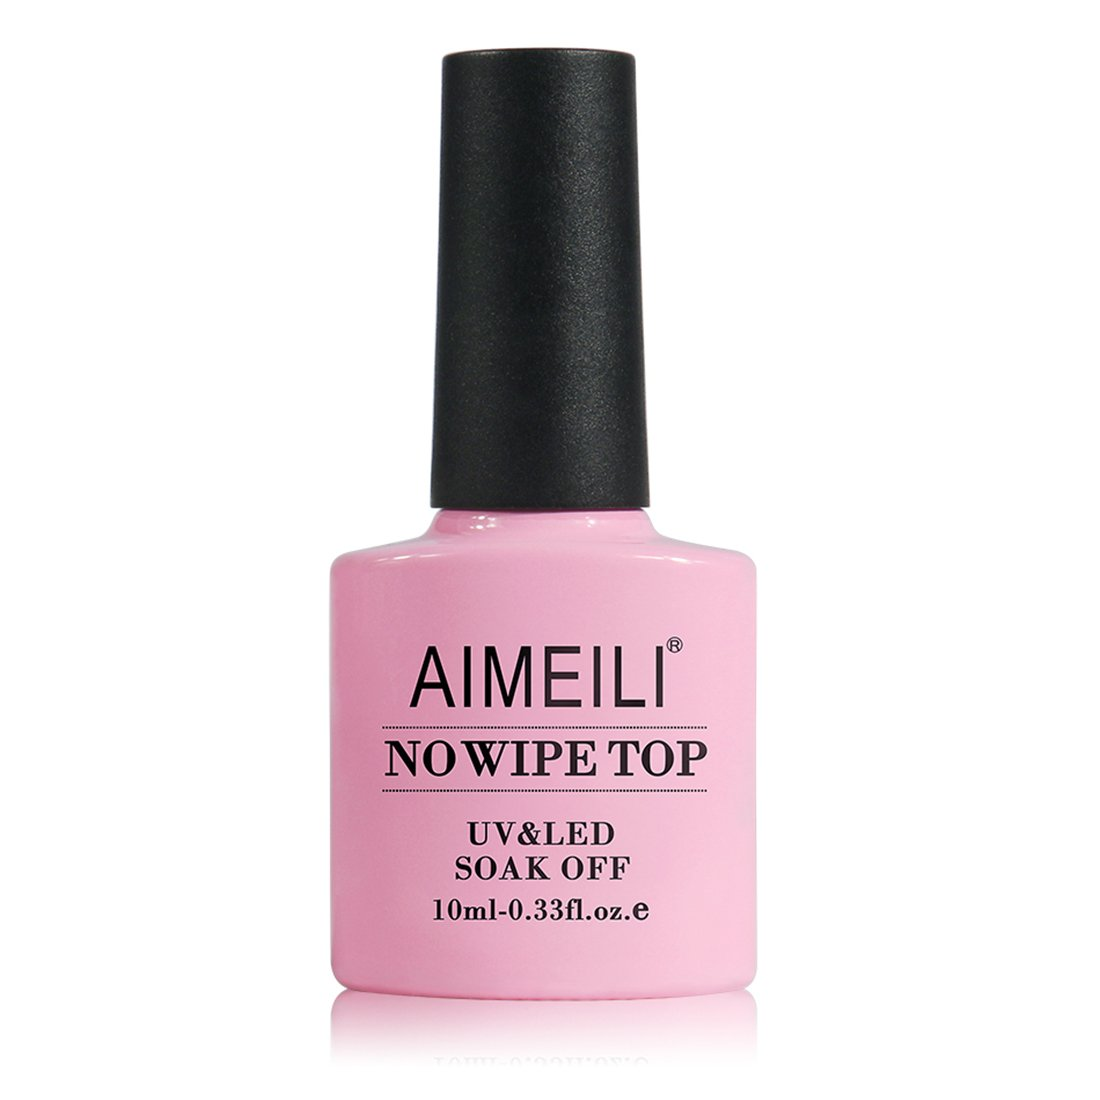 AIMEILI Esmalte De Uñas Soak Off UV LED Uñas De Gel - No Wipe Top Coat 10ml